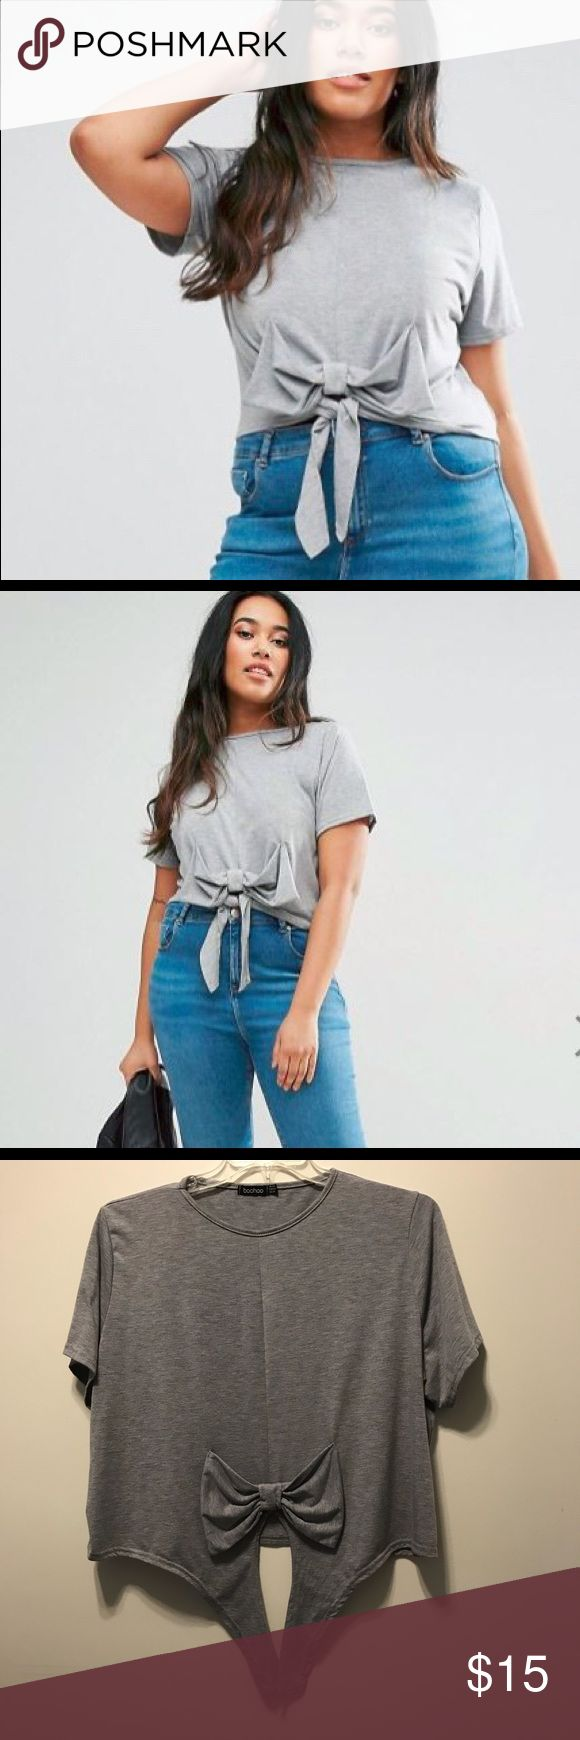 ASOS bow crop top ASOS bow crop top ASOS Curve Tops